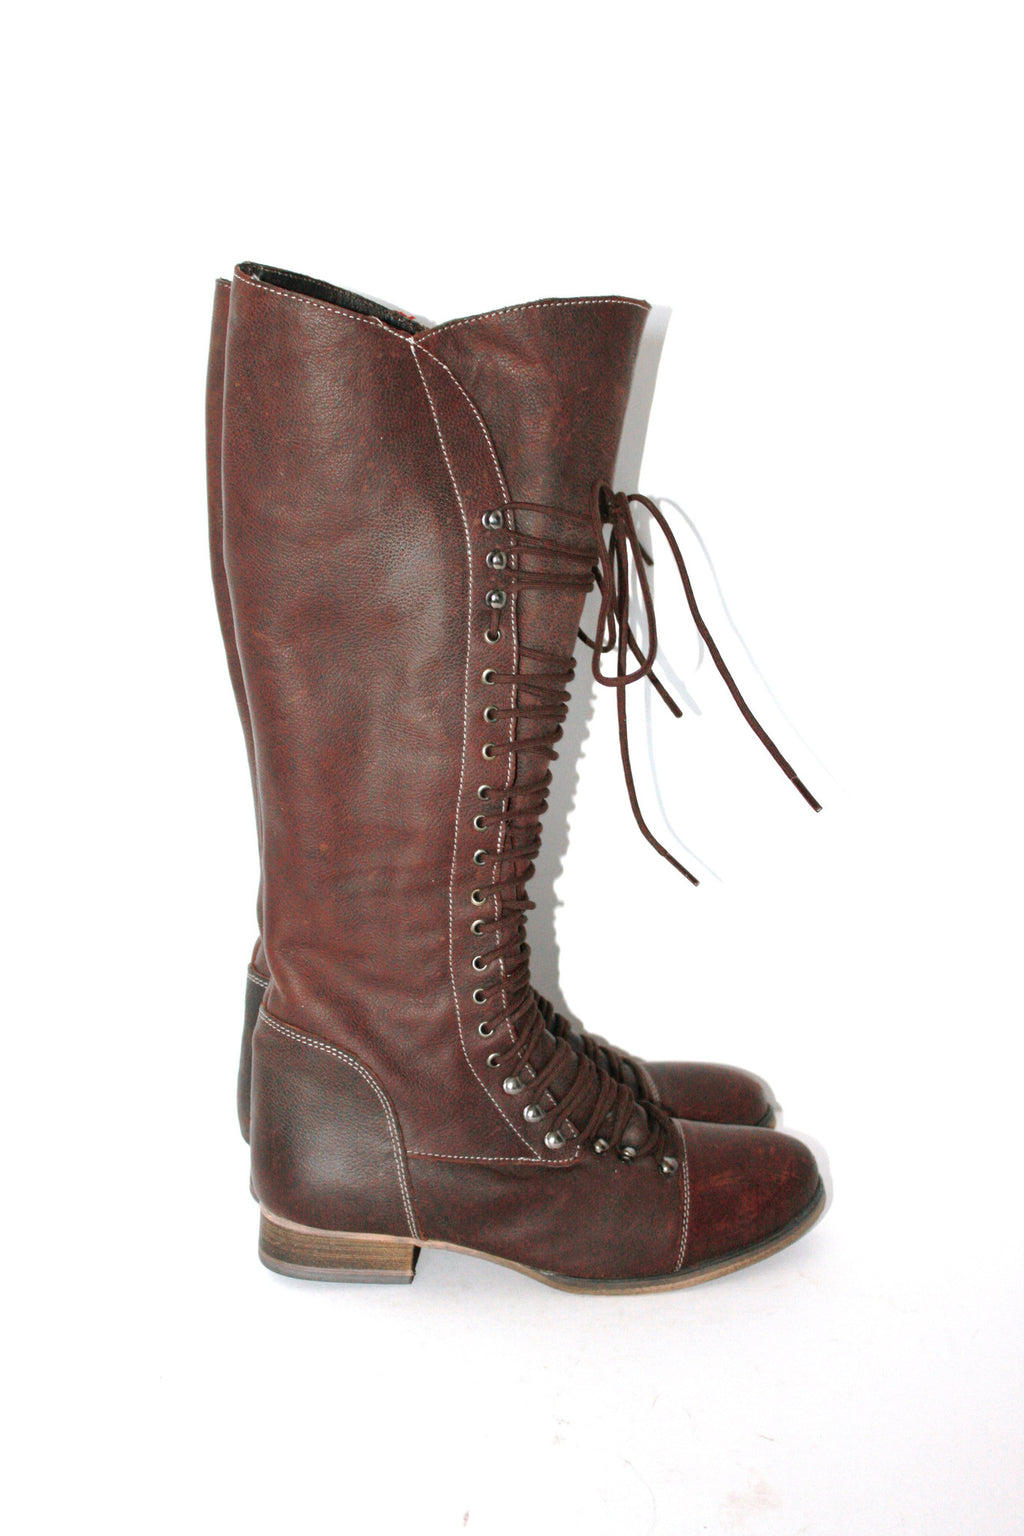 Brand New Steve Madden Tall Leather Perrin Brown Boots - Joyce's Closet  - 1